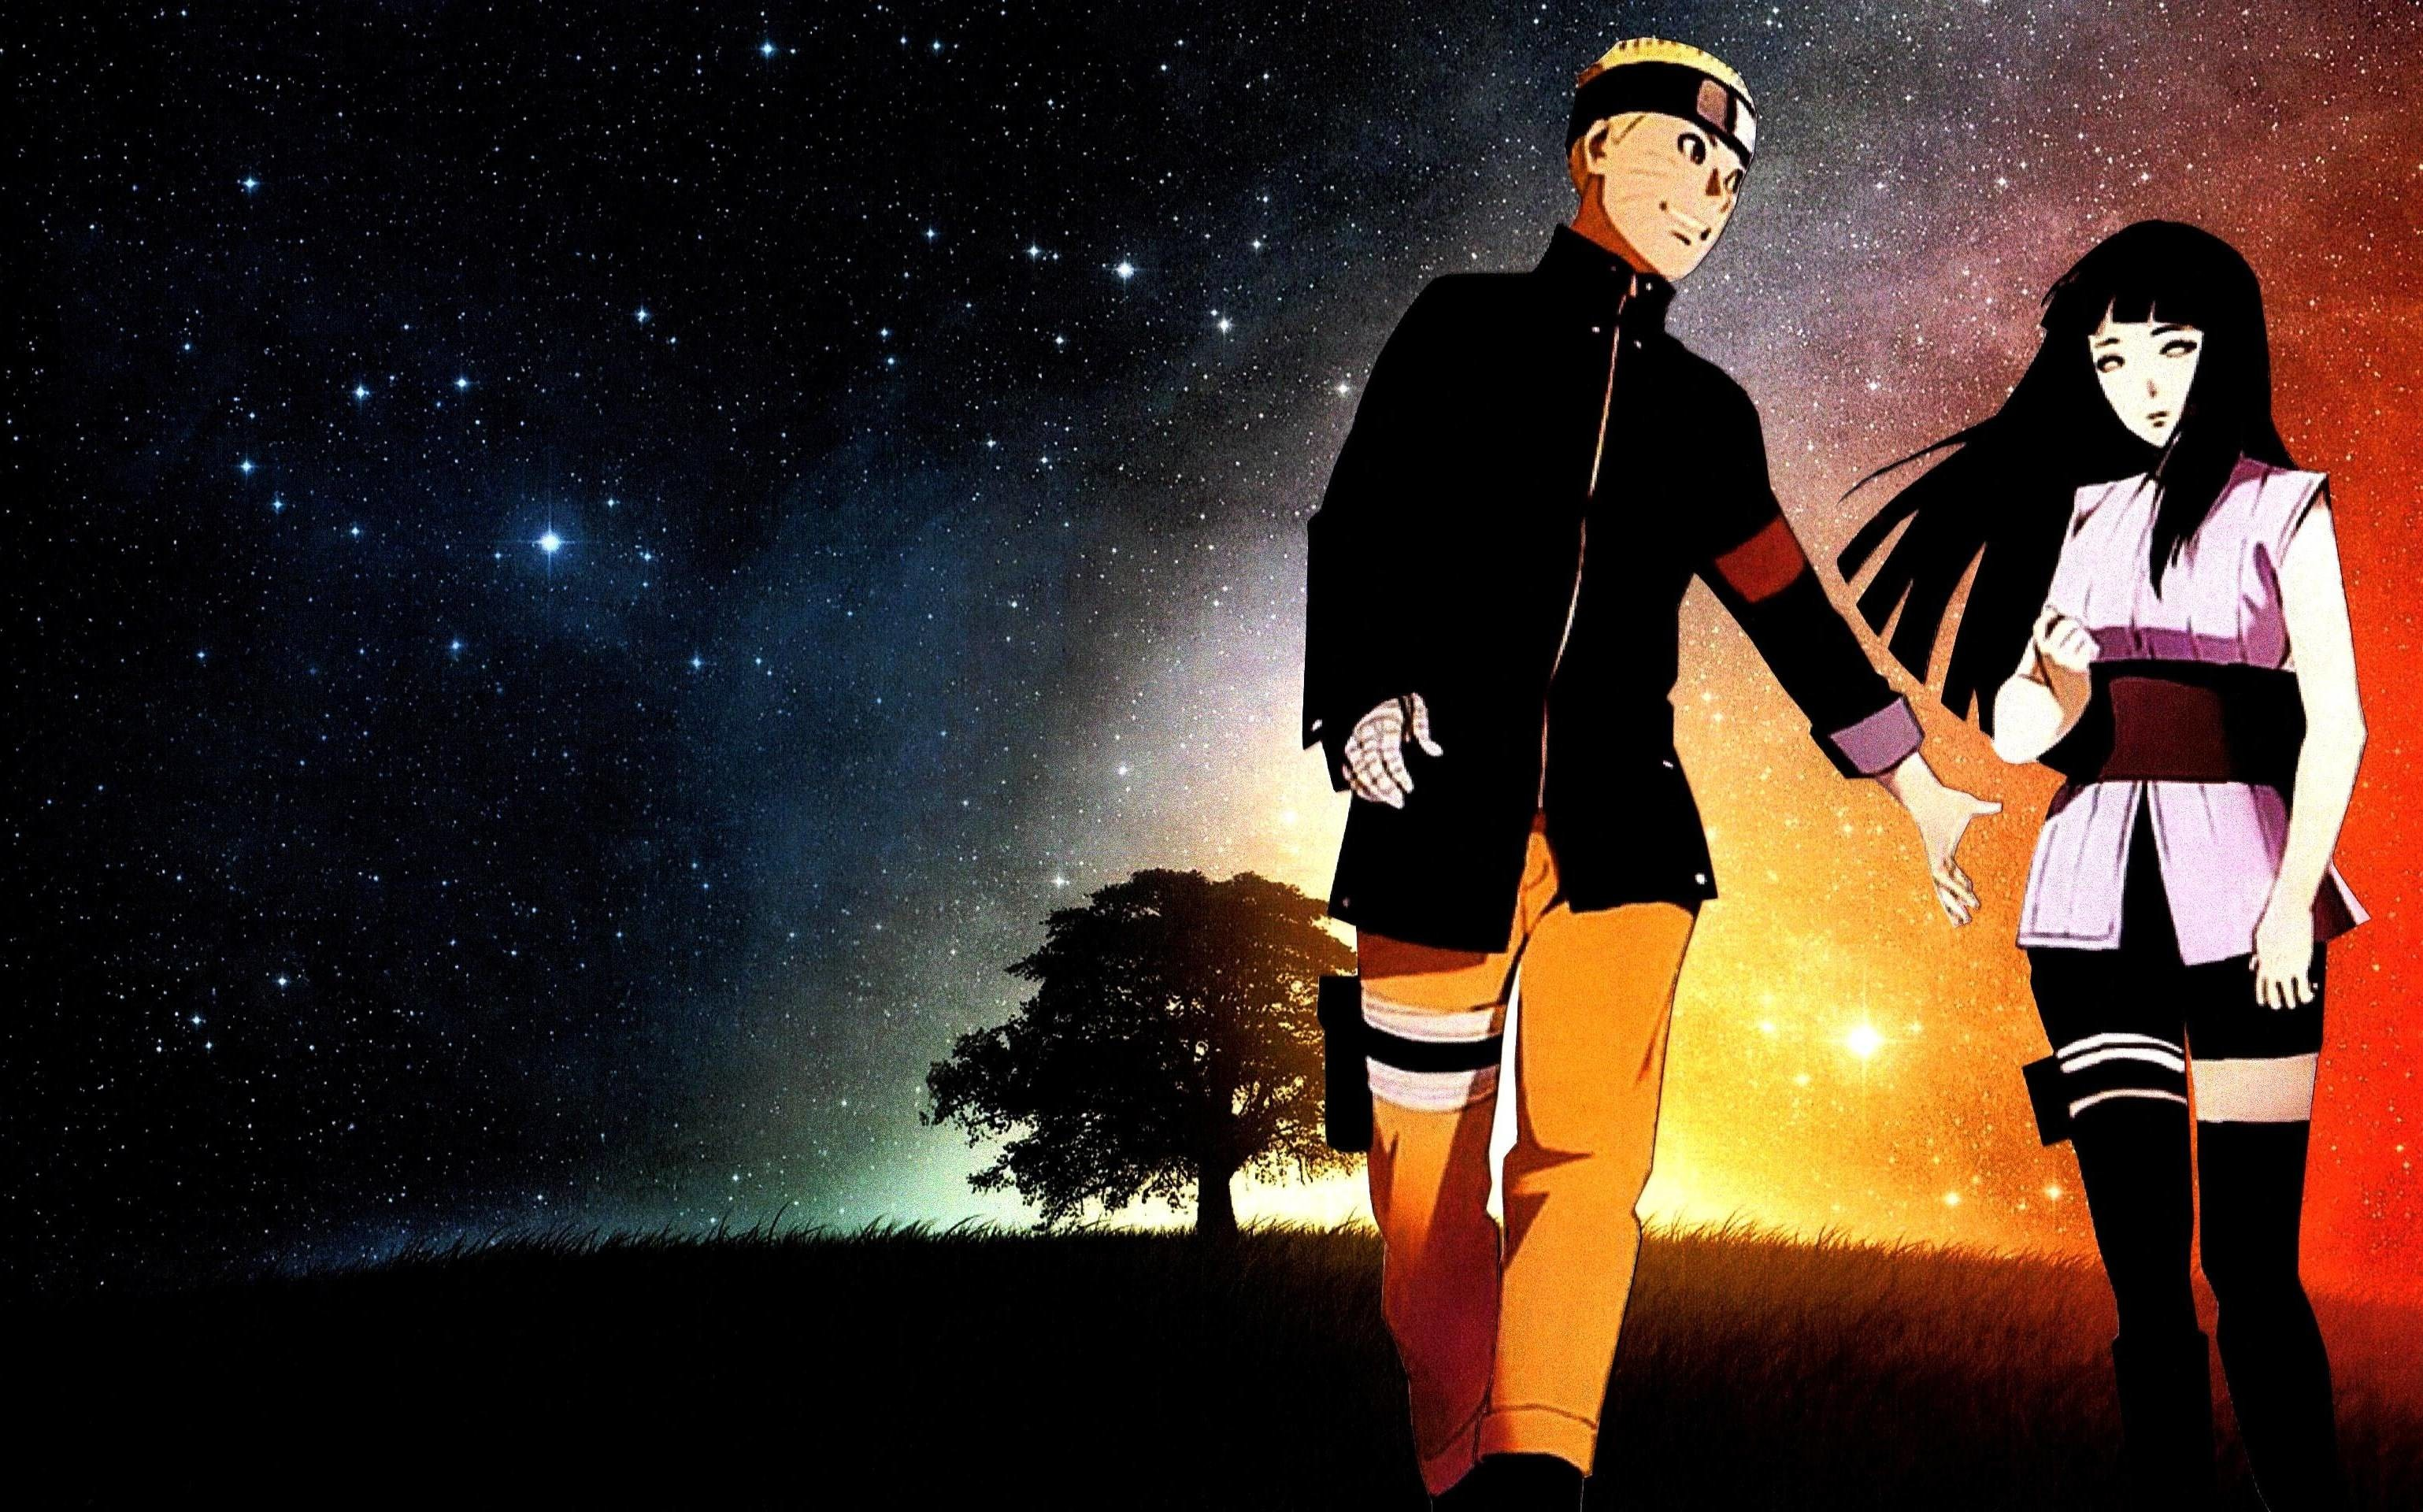 Download Wallpaper Macbook Naruto - 876594-cool-the-last-naruto-the-movie-wallpapers-3077x1920  Pic_597691.jpg